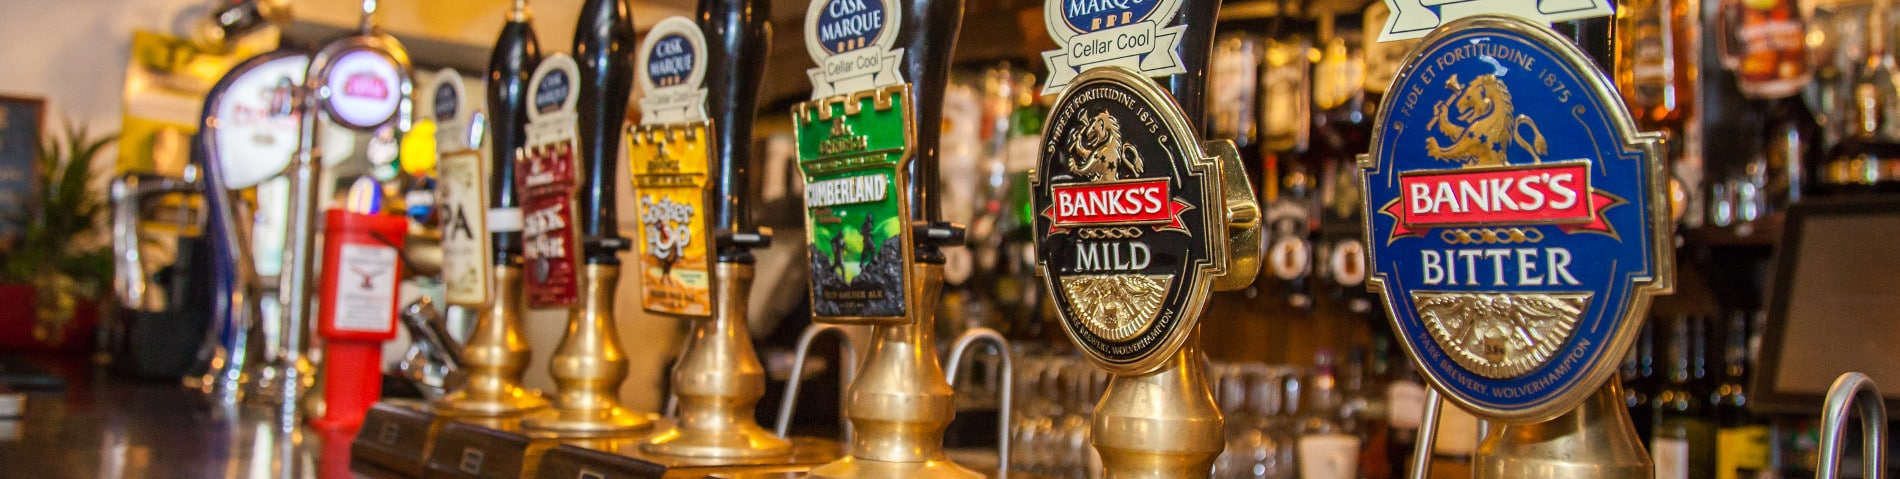 Star Doubles Cask Marque Approved Pubs